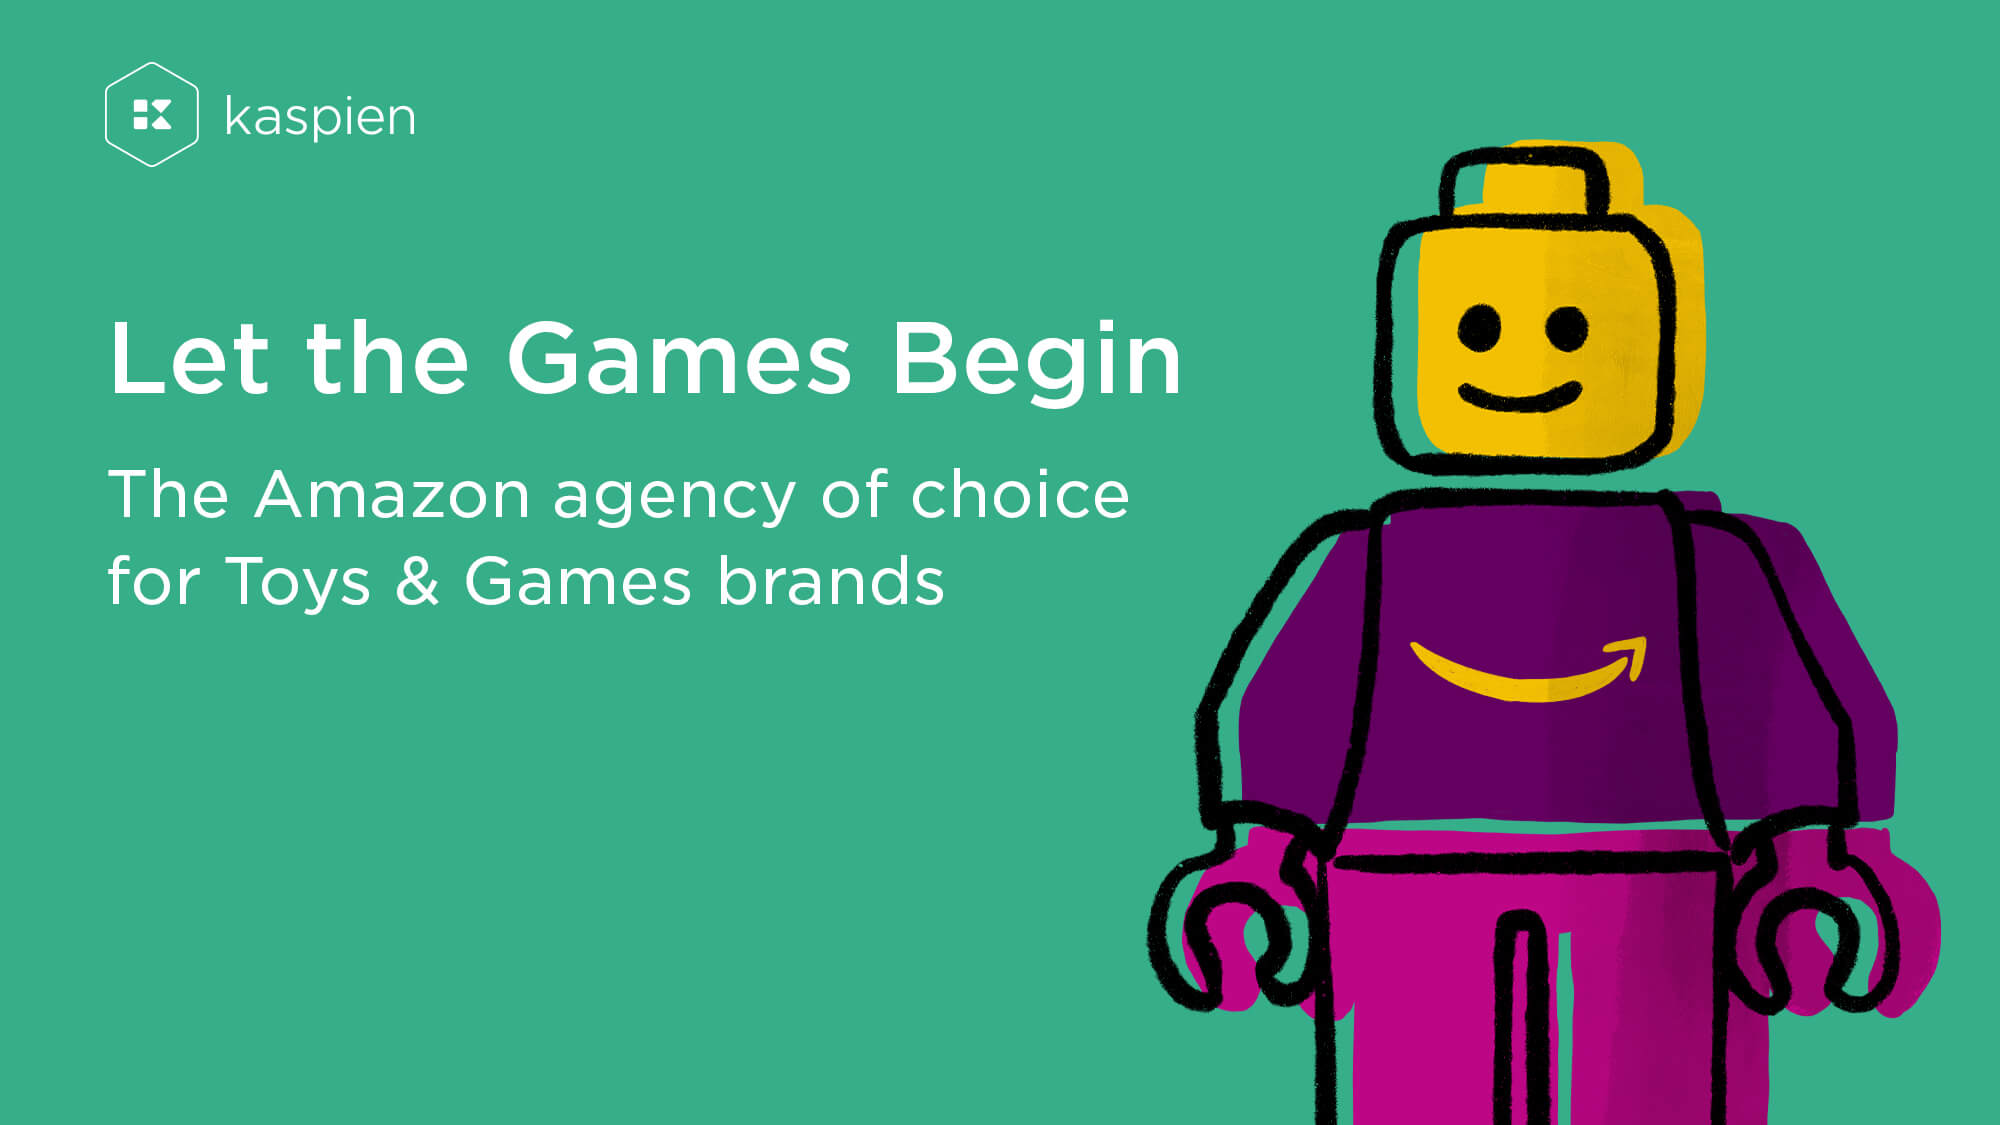 Toys & Games strategy